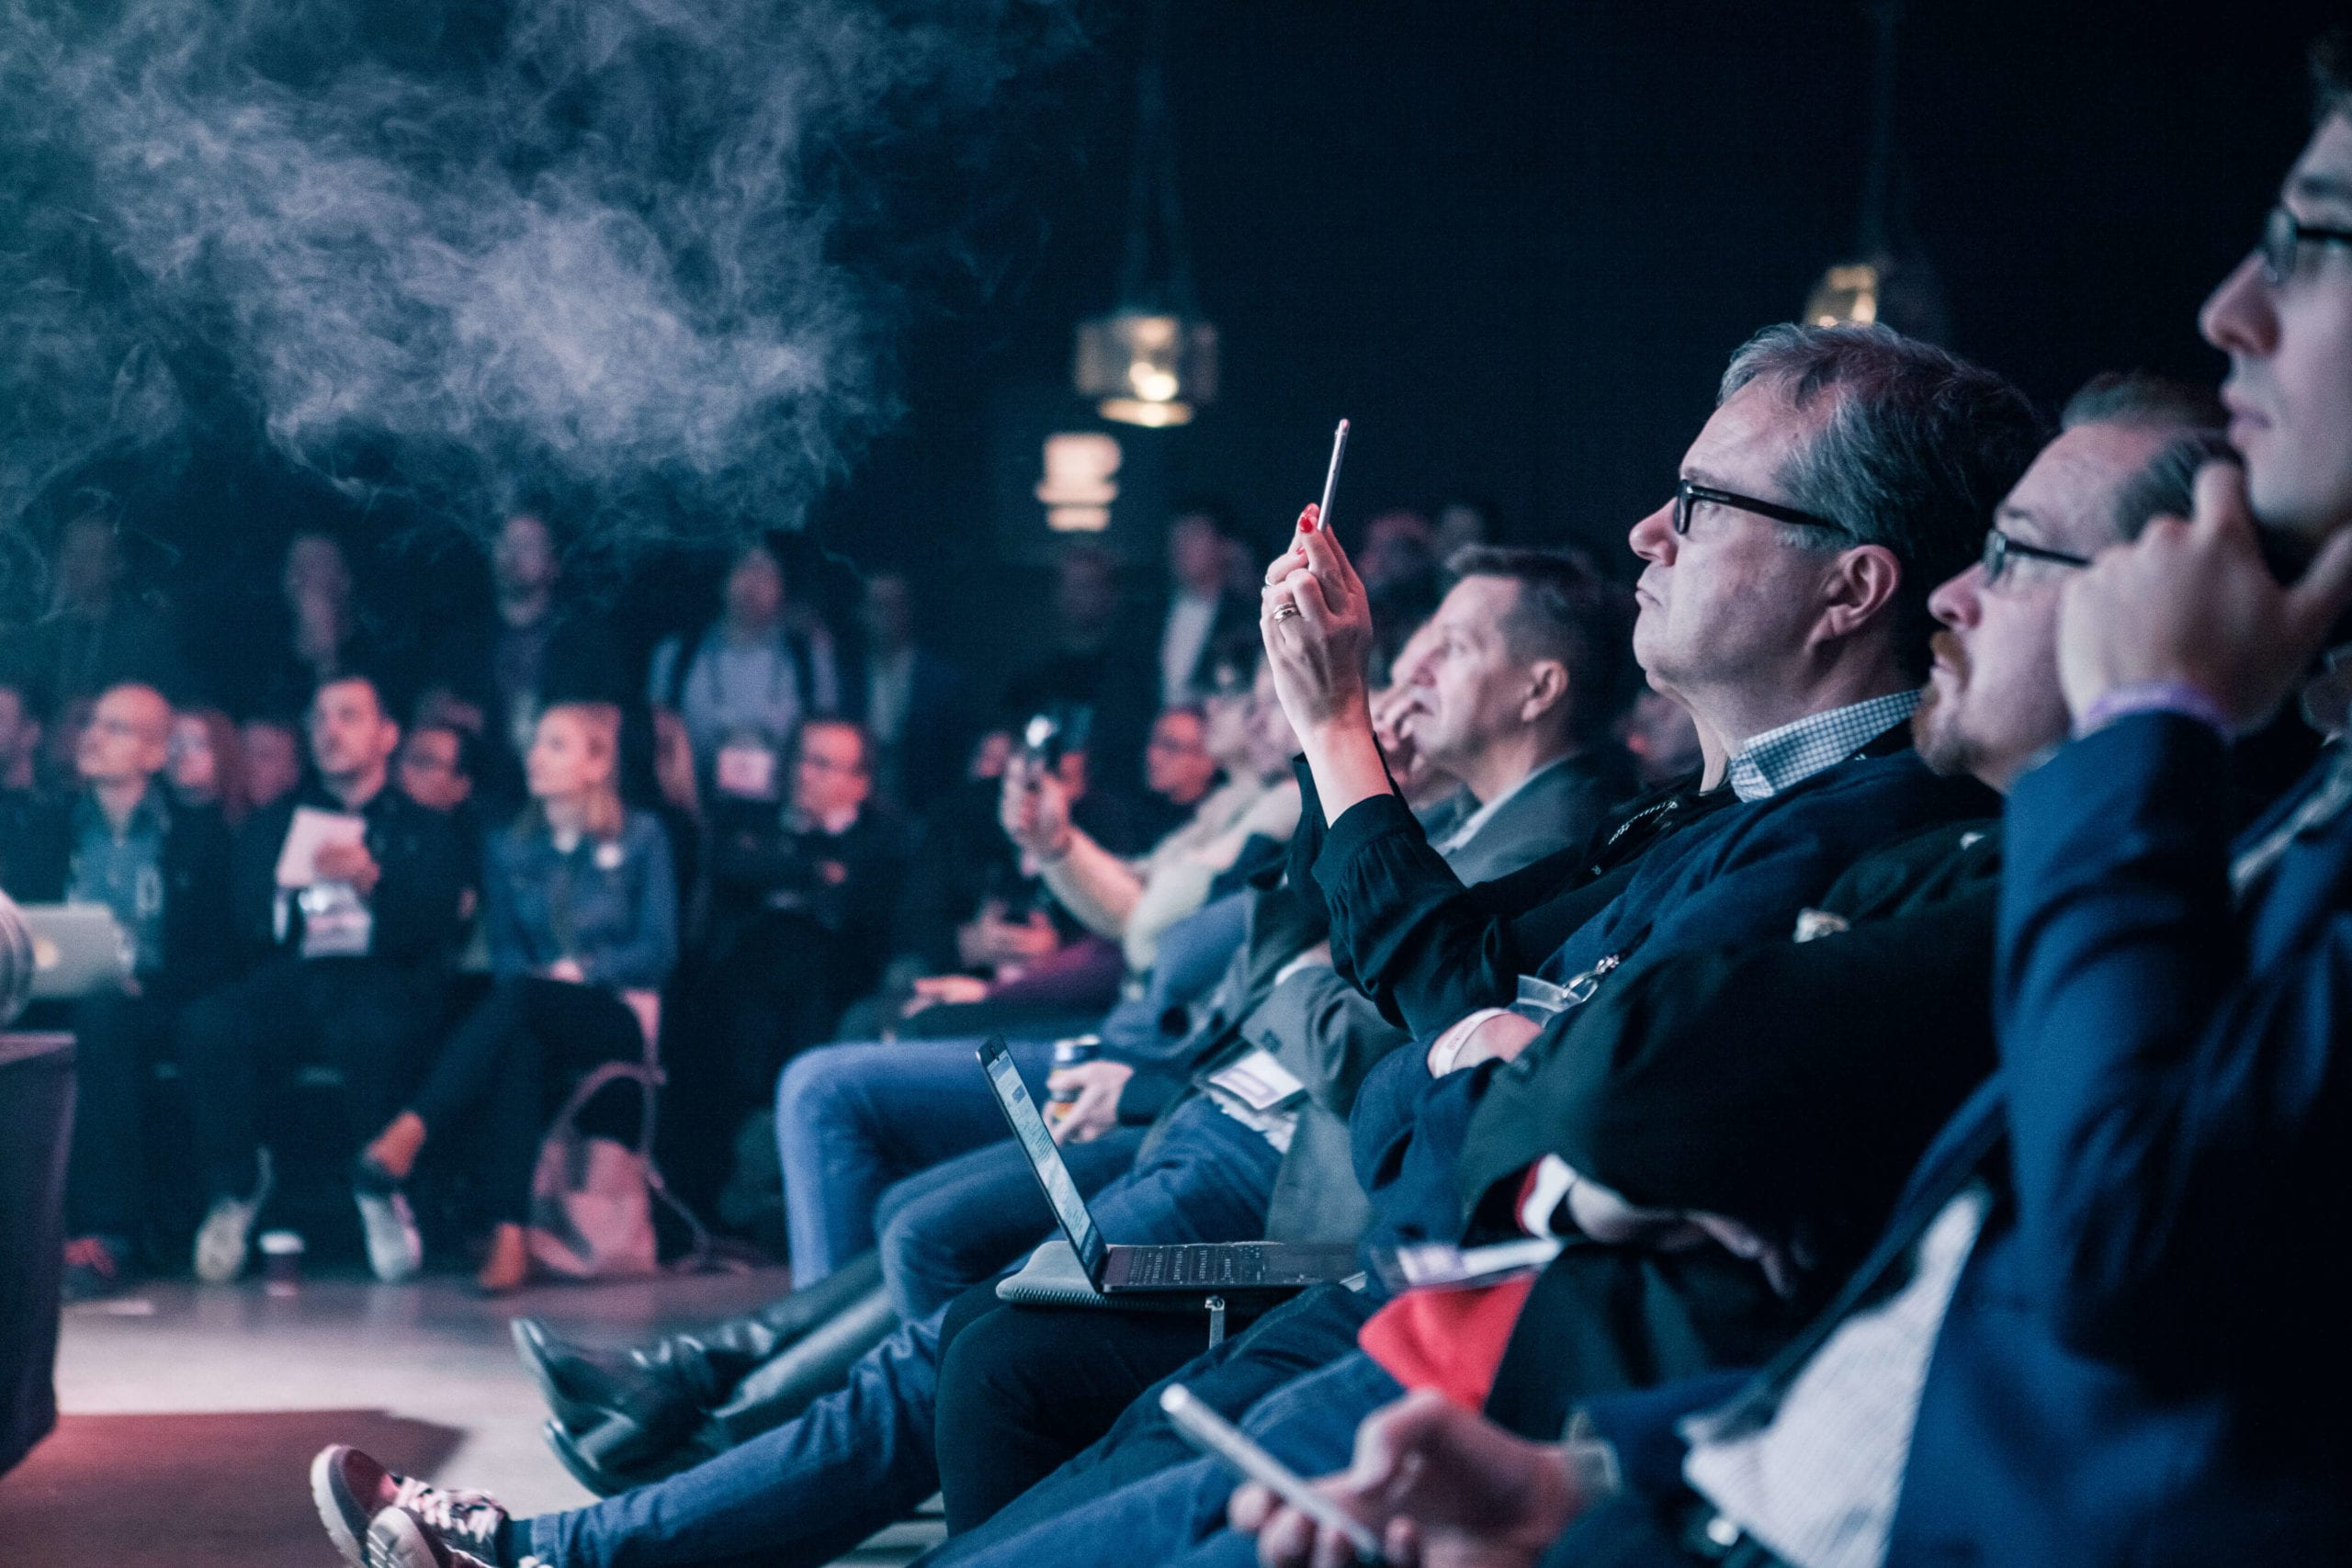 Slush 2016 tech conference in Helsinki